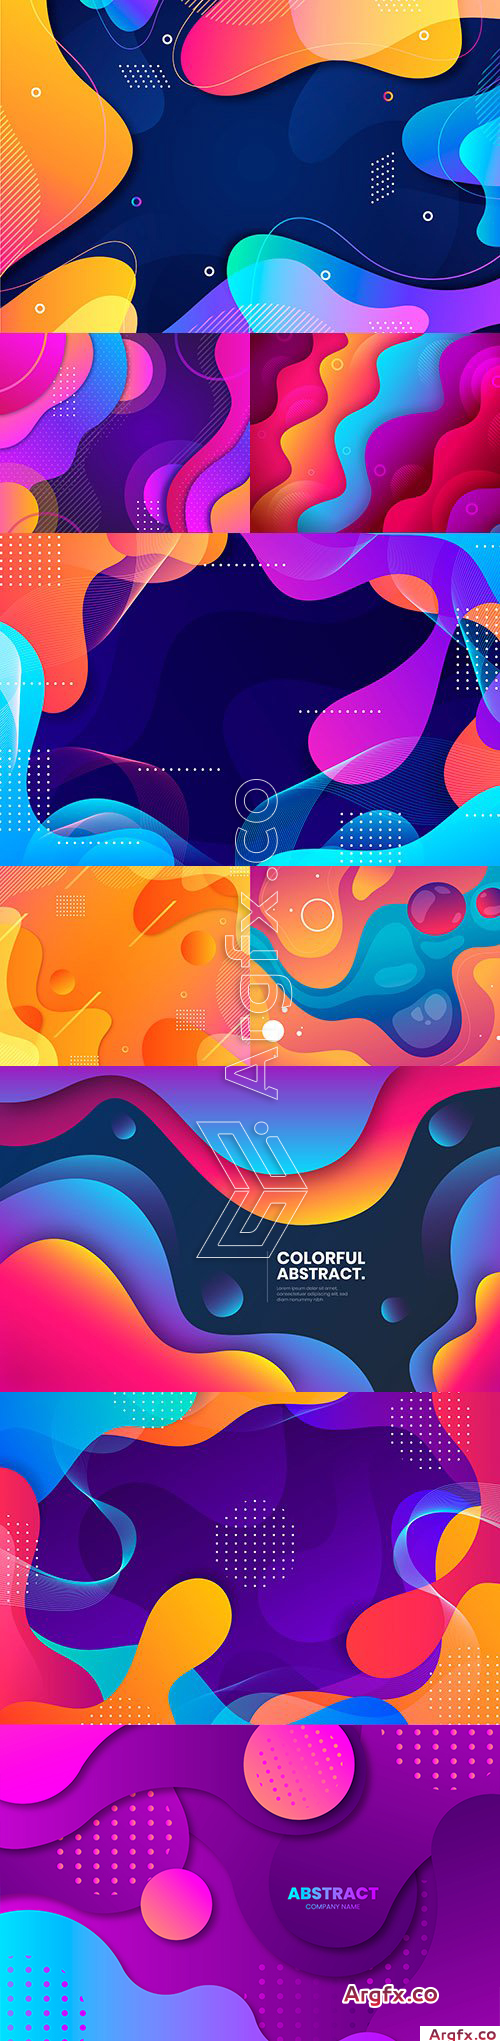 Colorful wavy background gradient abstract design